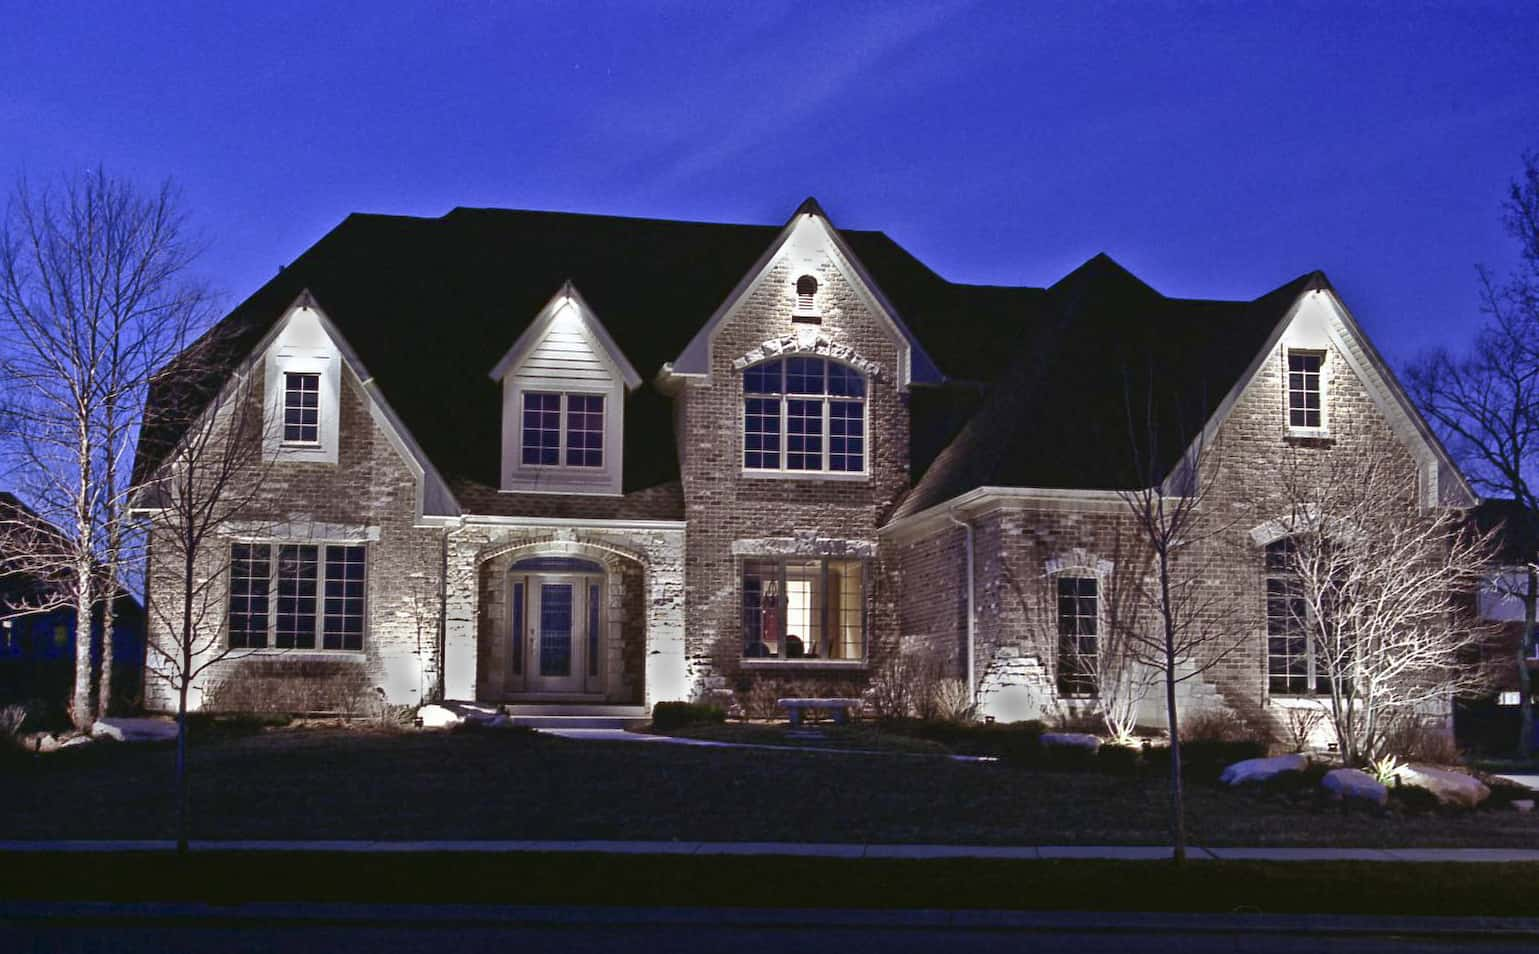 Kitchen Cabinets Chicago Il Alloco Front Outdoor Lighting In Chicago Il Outdoor